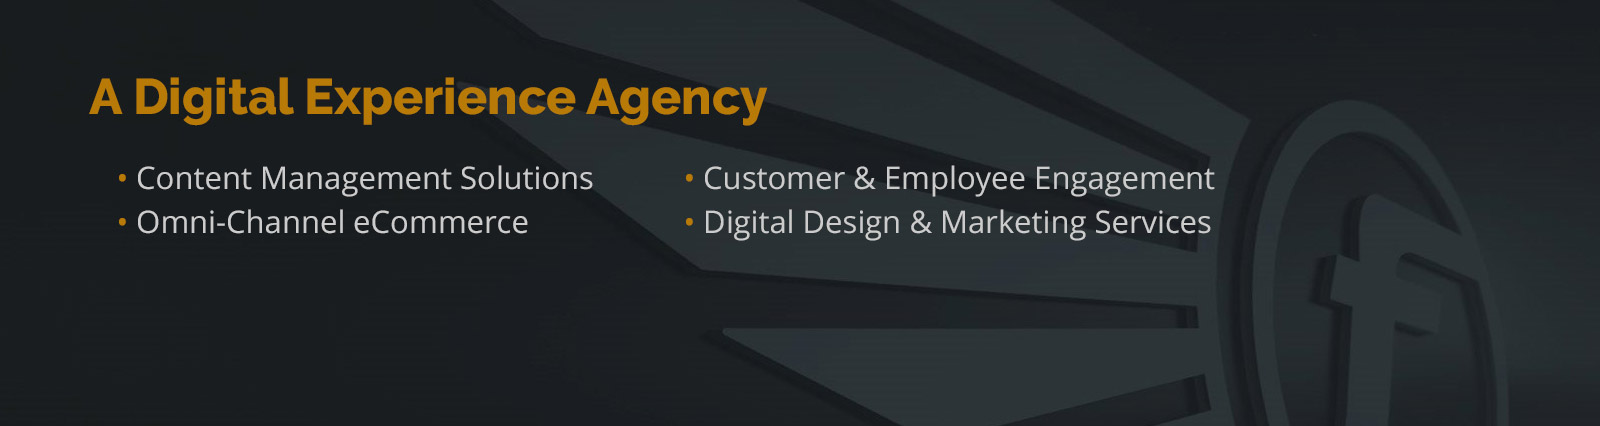 A Digital Experience Agency